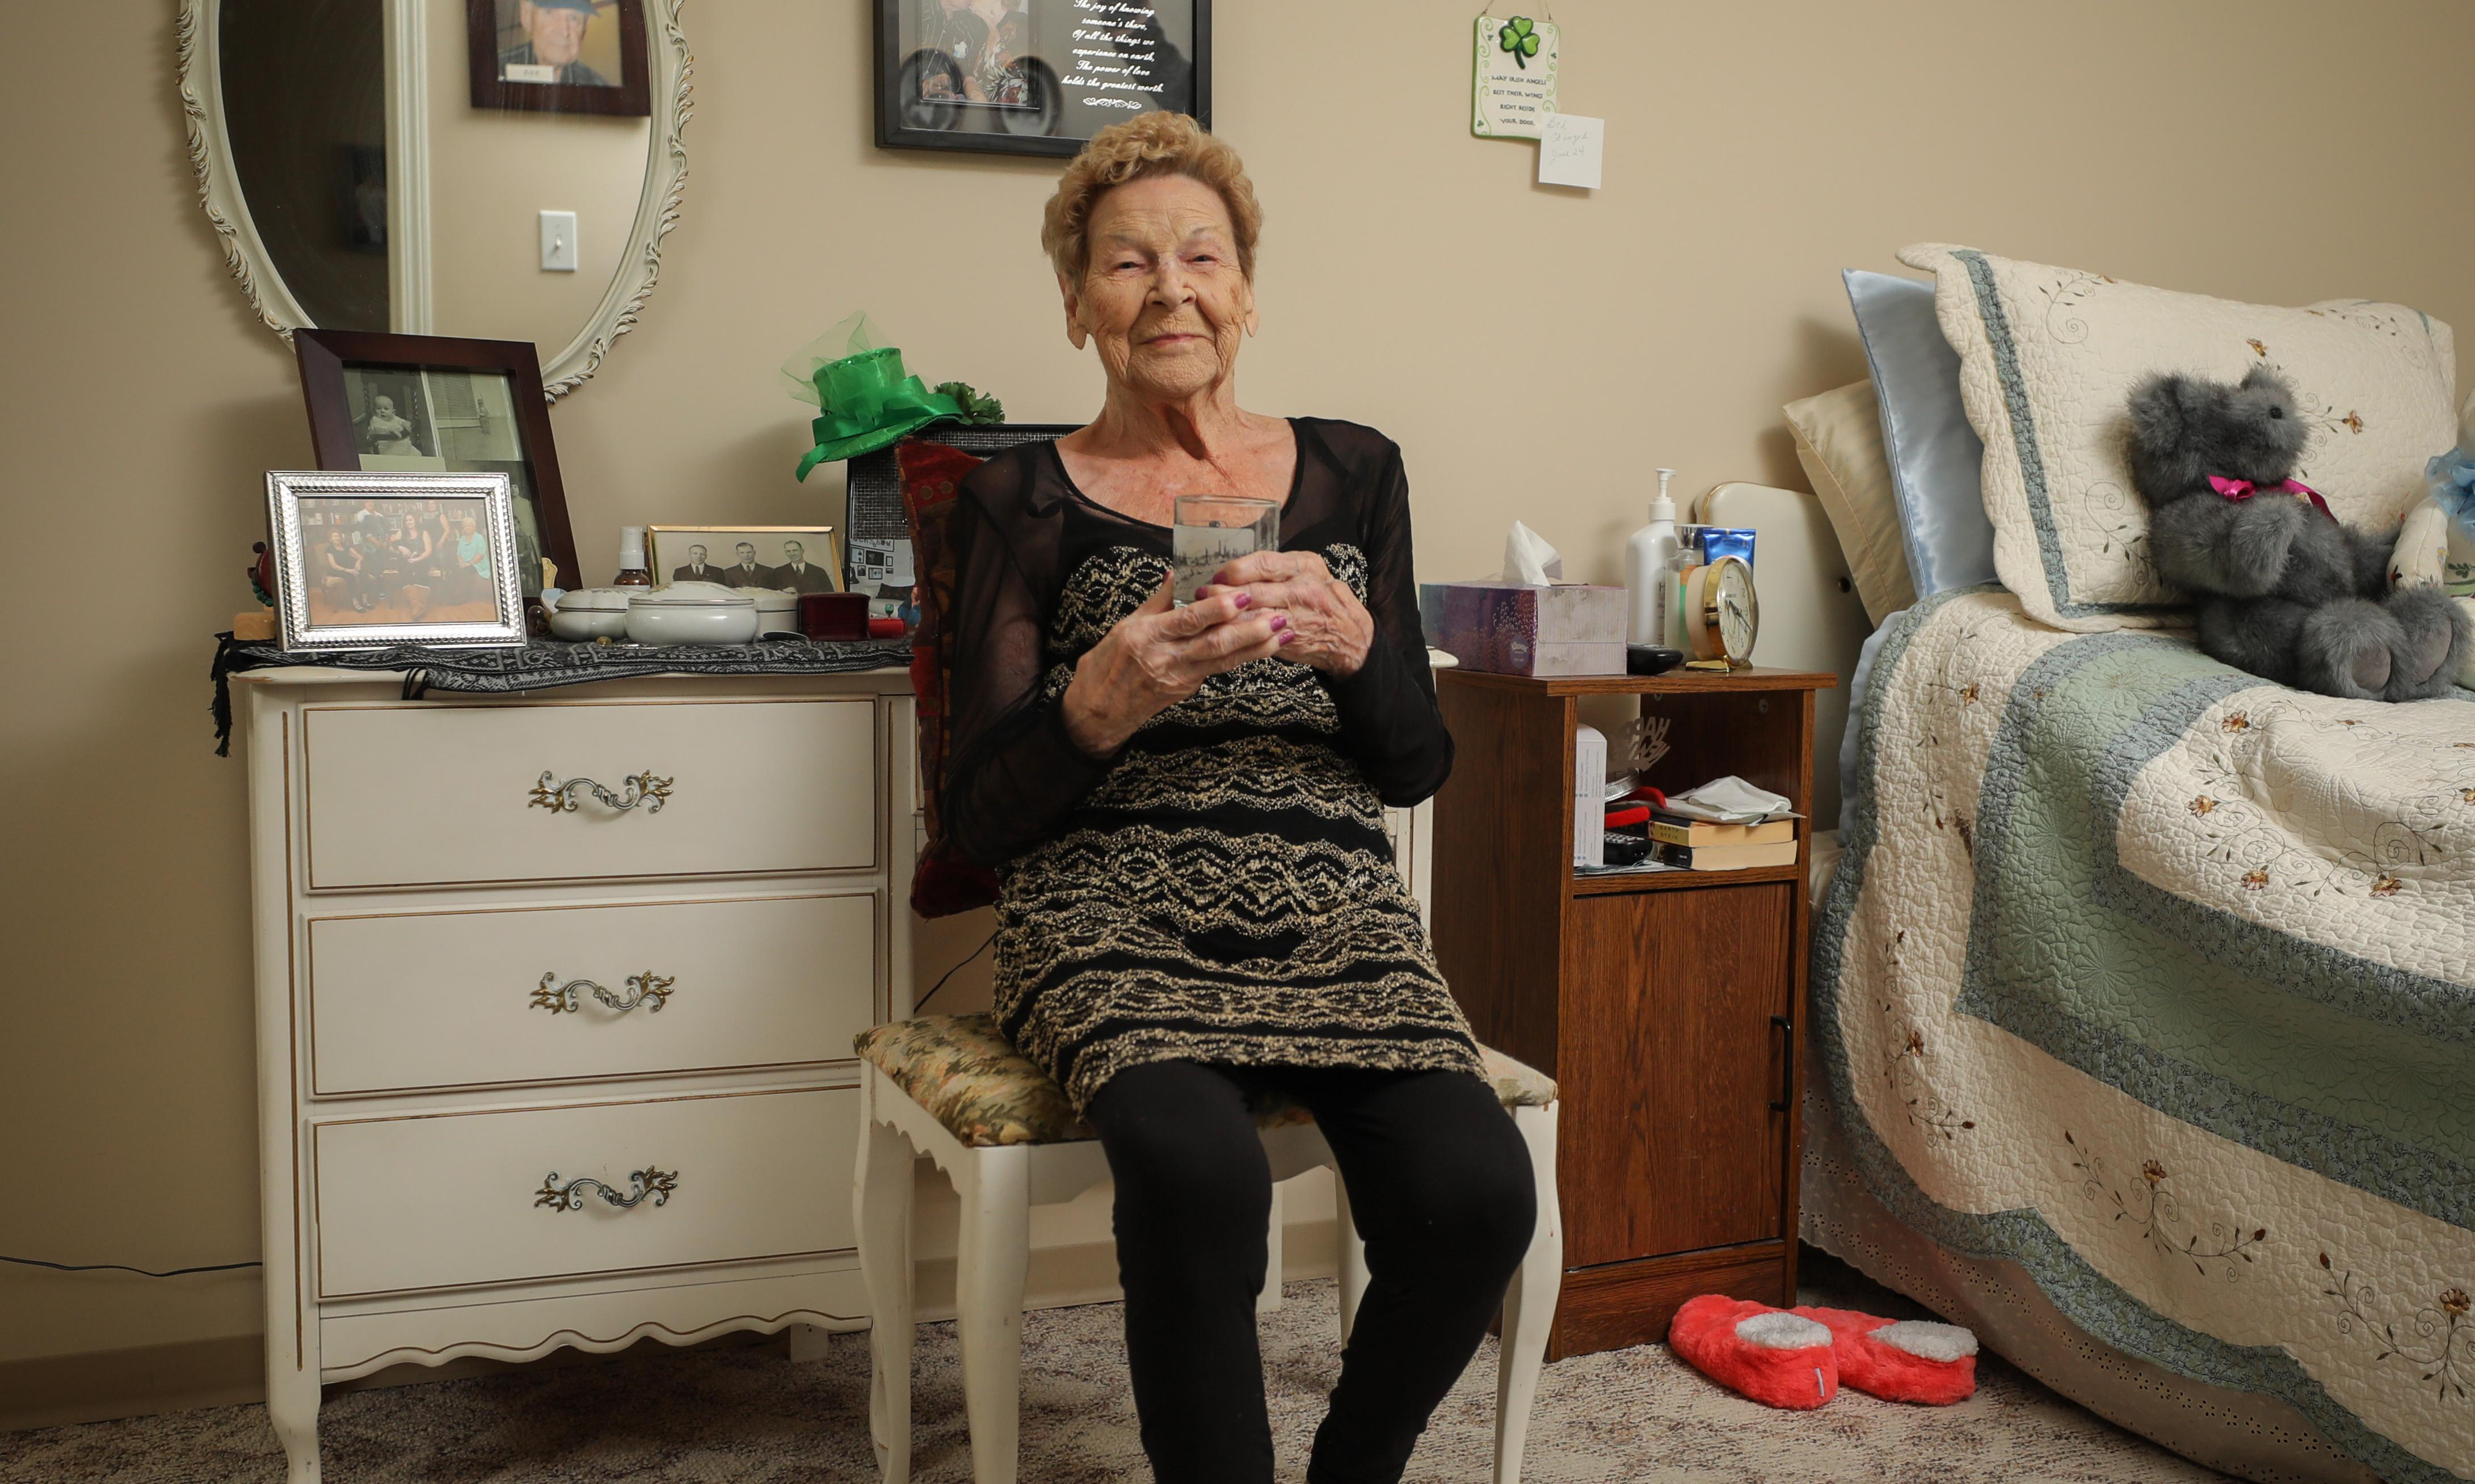 Experience: I am a great-great-great-grandmother